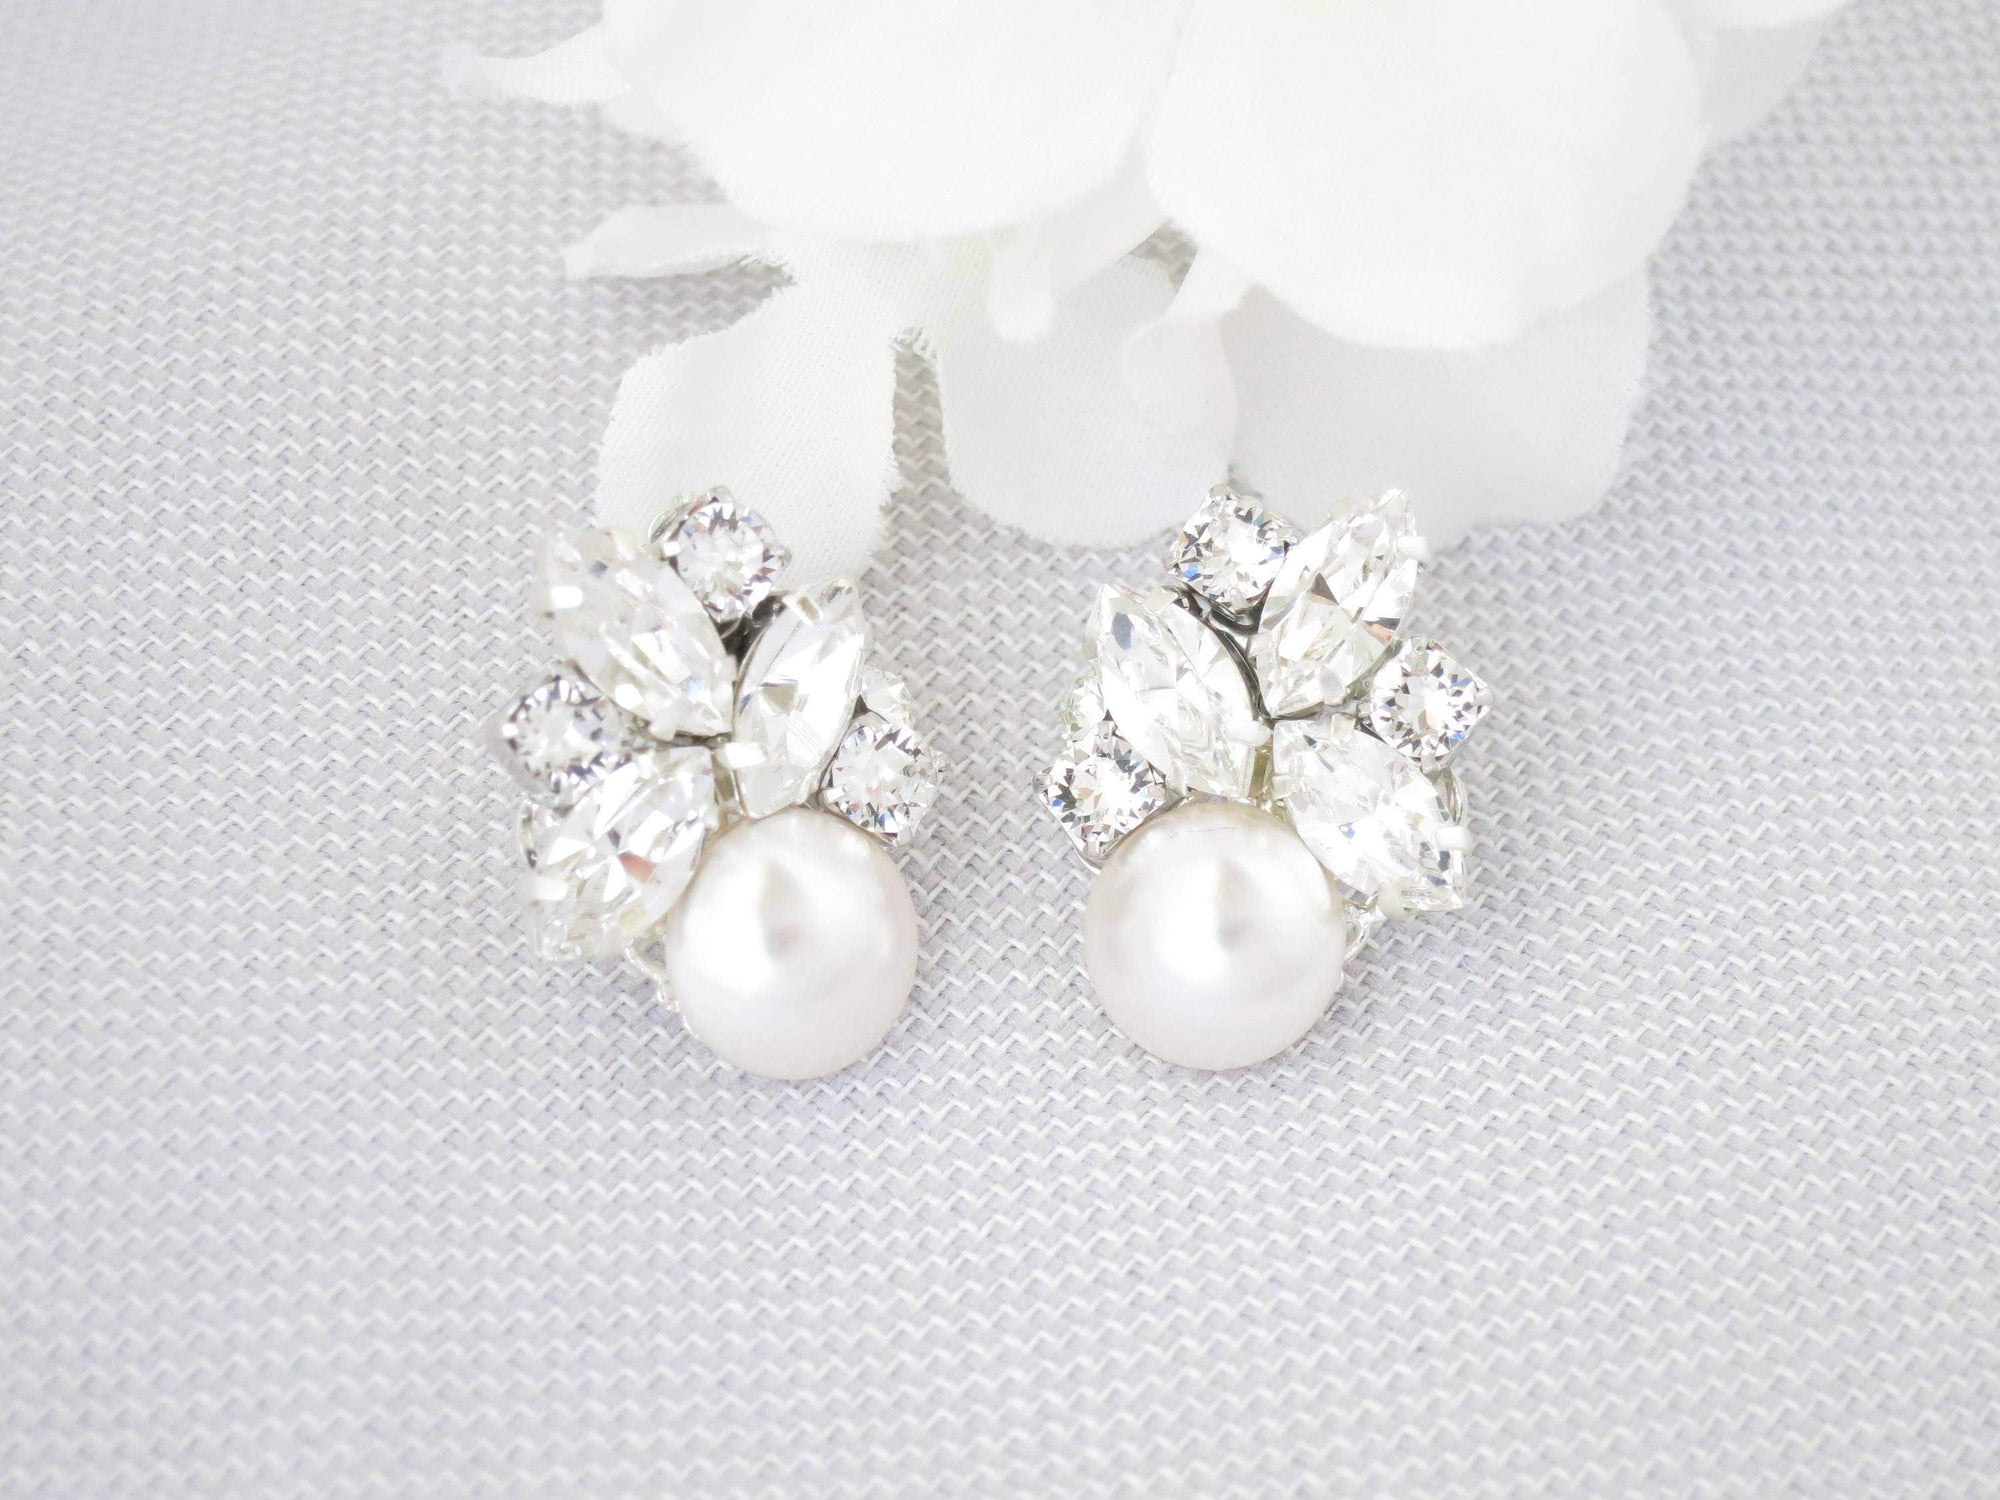 AUDREY:  Swarovski Cluster Stud Earrings - BlingBaddaBoom - Minimalist, Vintage, Modern Wedding and Bridal Jewelry